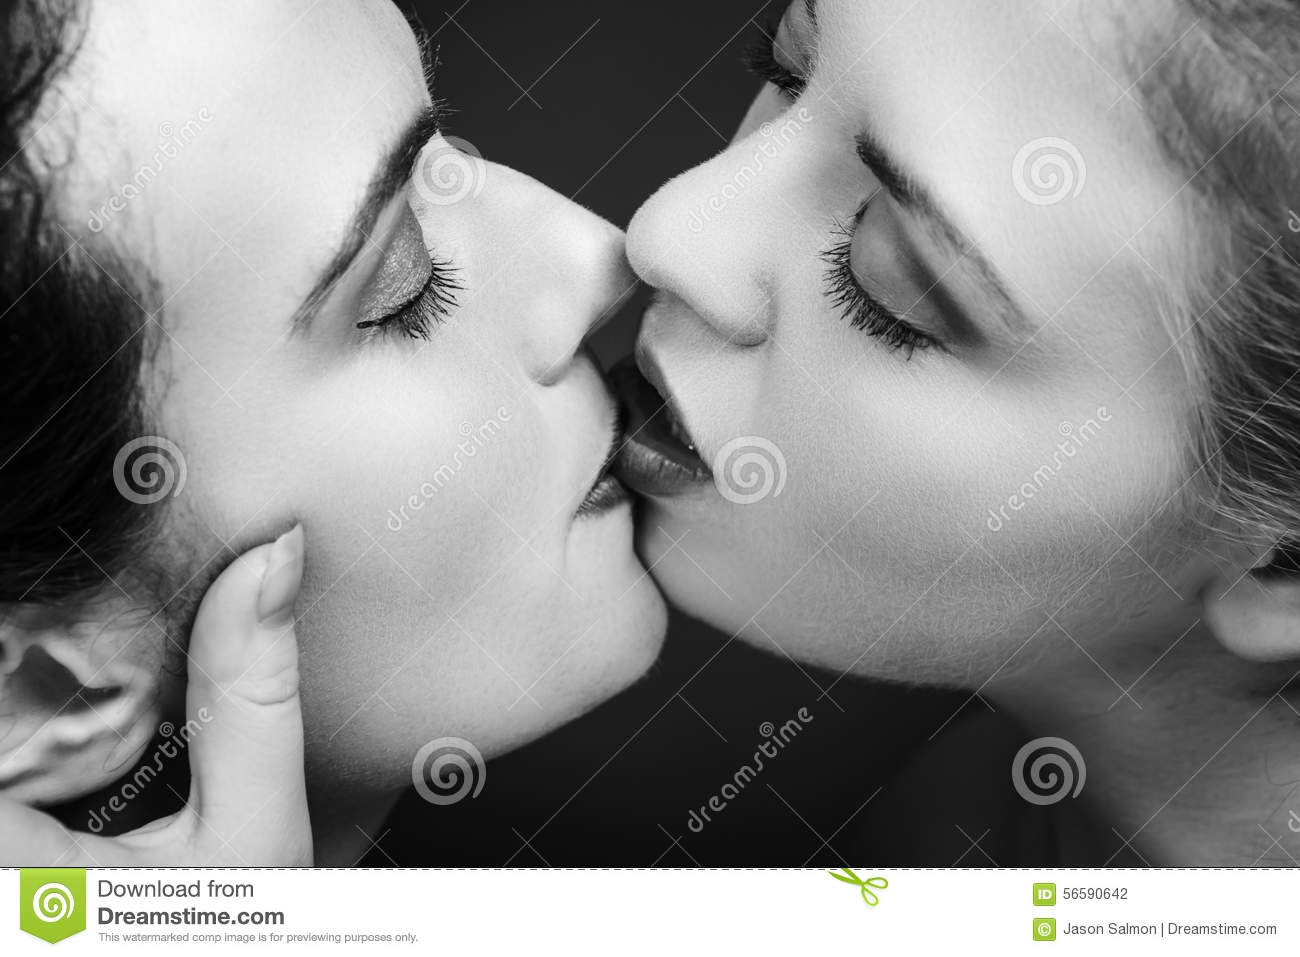 Two Girls Kissing Each Other